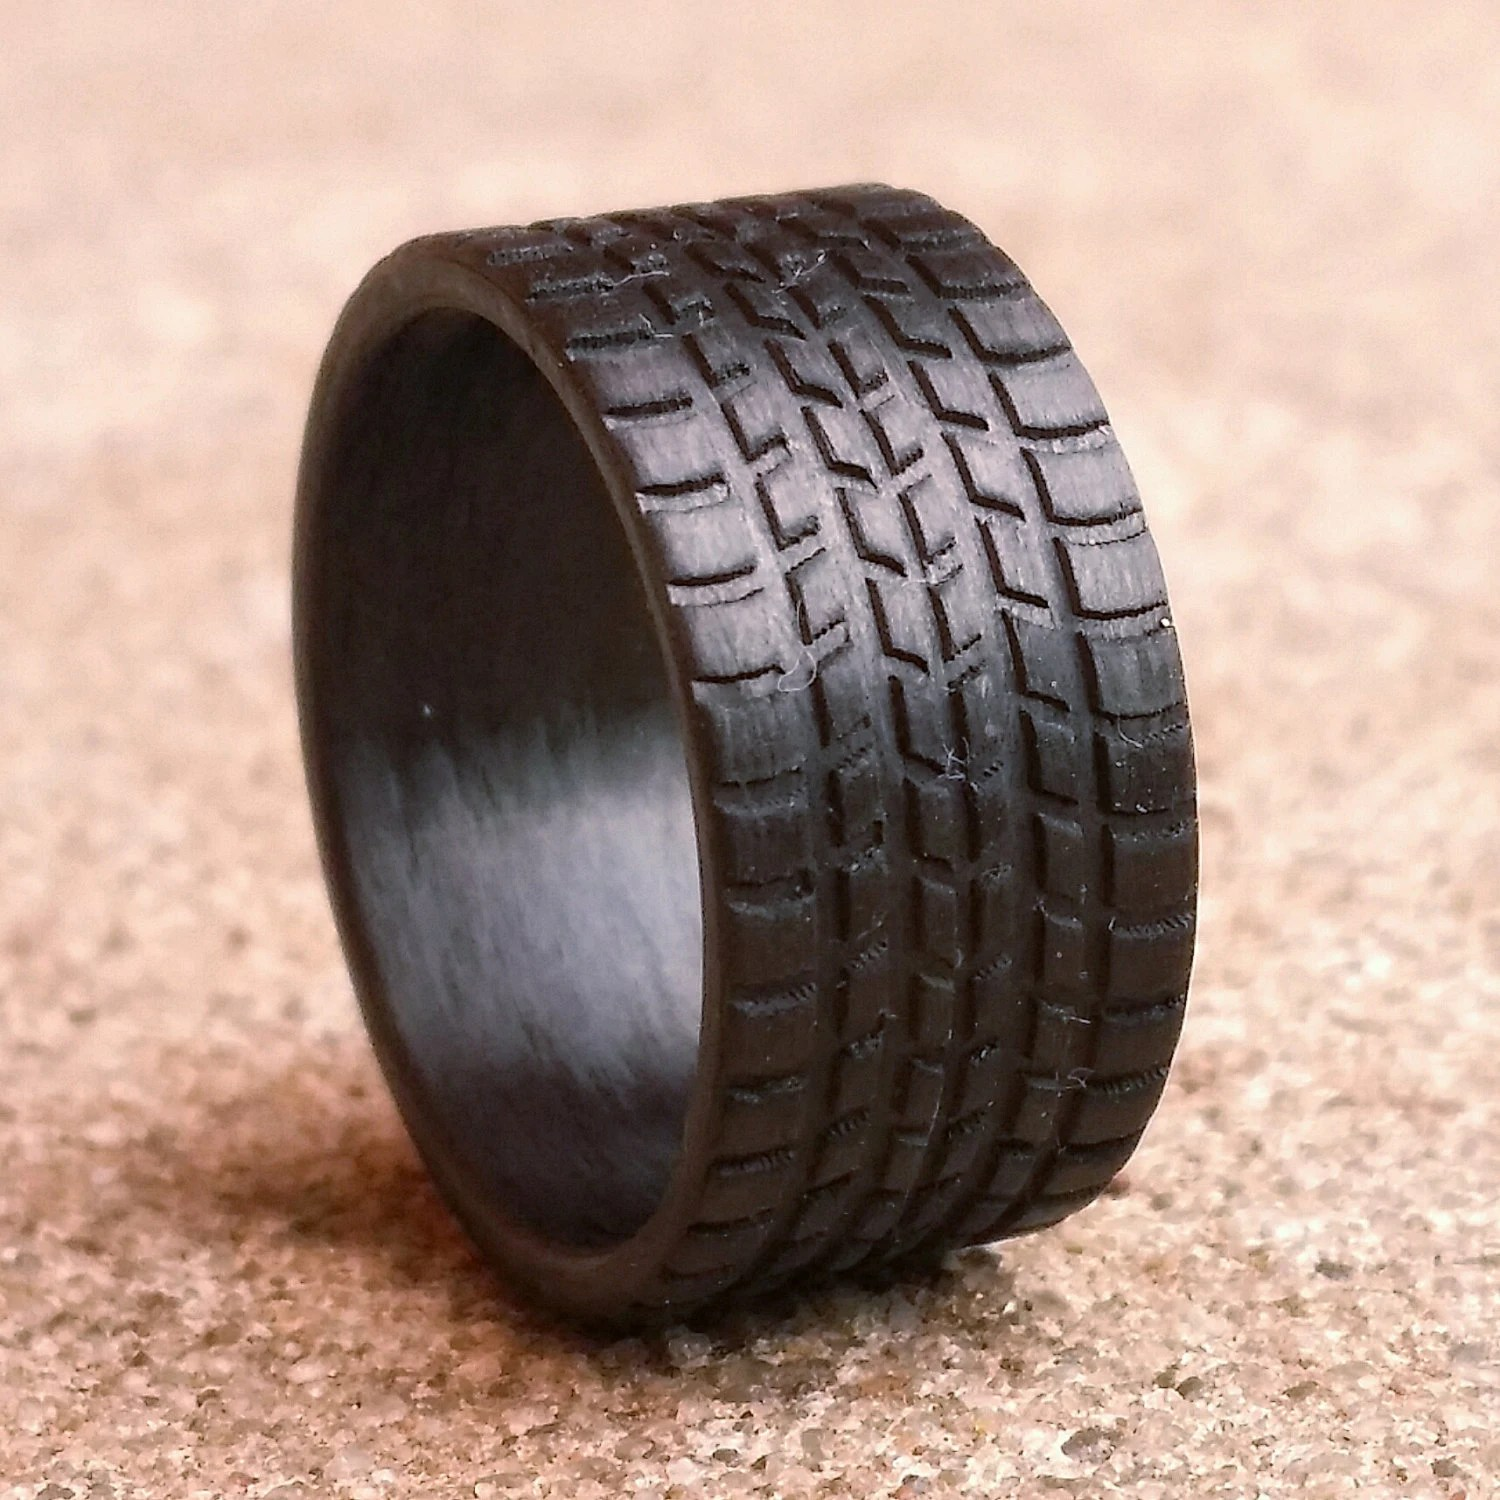 tire tread ring mud tire wedding rings Sport Tread 10mm wide Carbon Fiber Tread Ring Strong Light Weight Wedding Ring Comfort fit Durable Finish